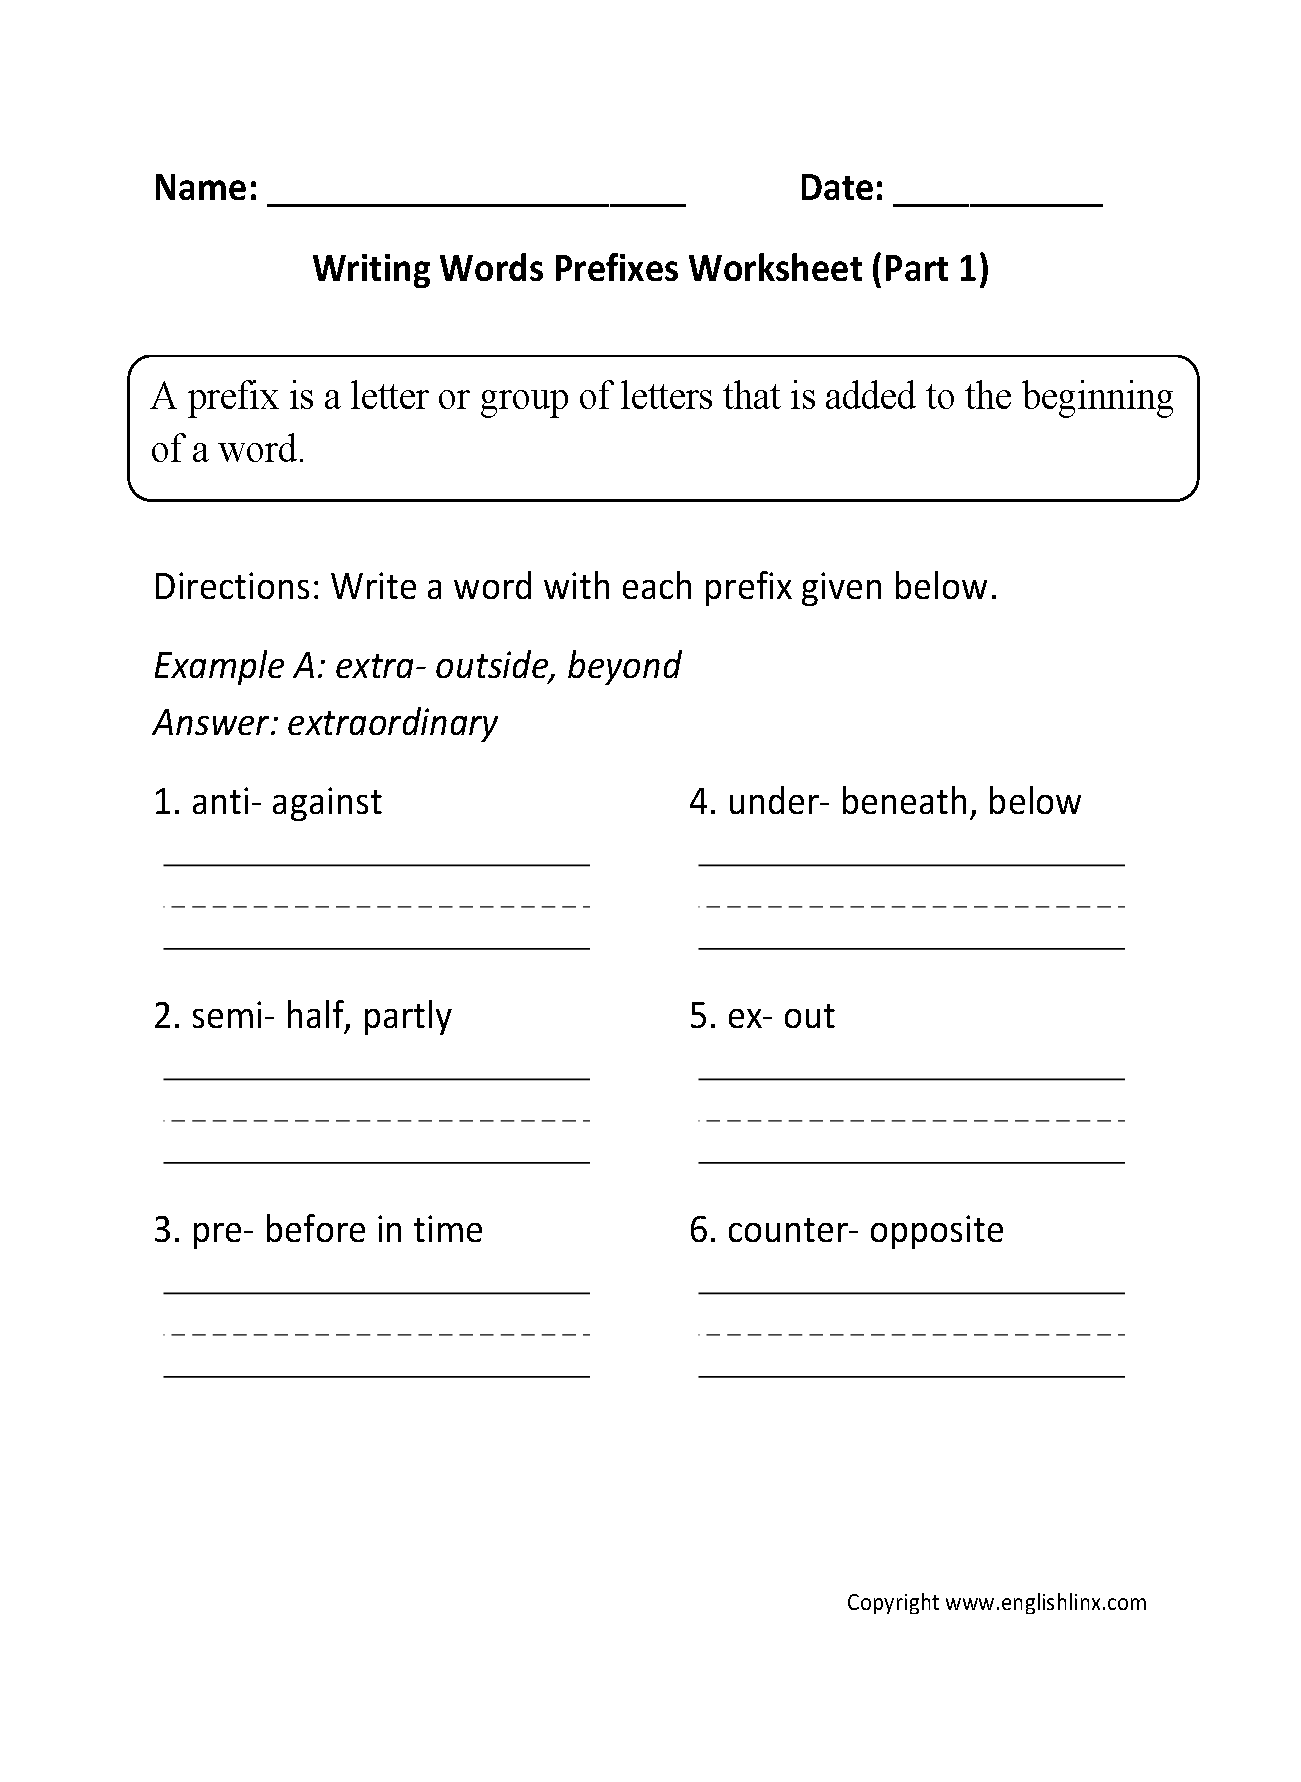 hight resolution of Prefixes Worksheets   Writing Words Prefixes Worksheet Part 1